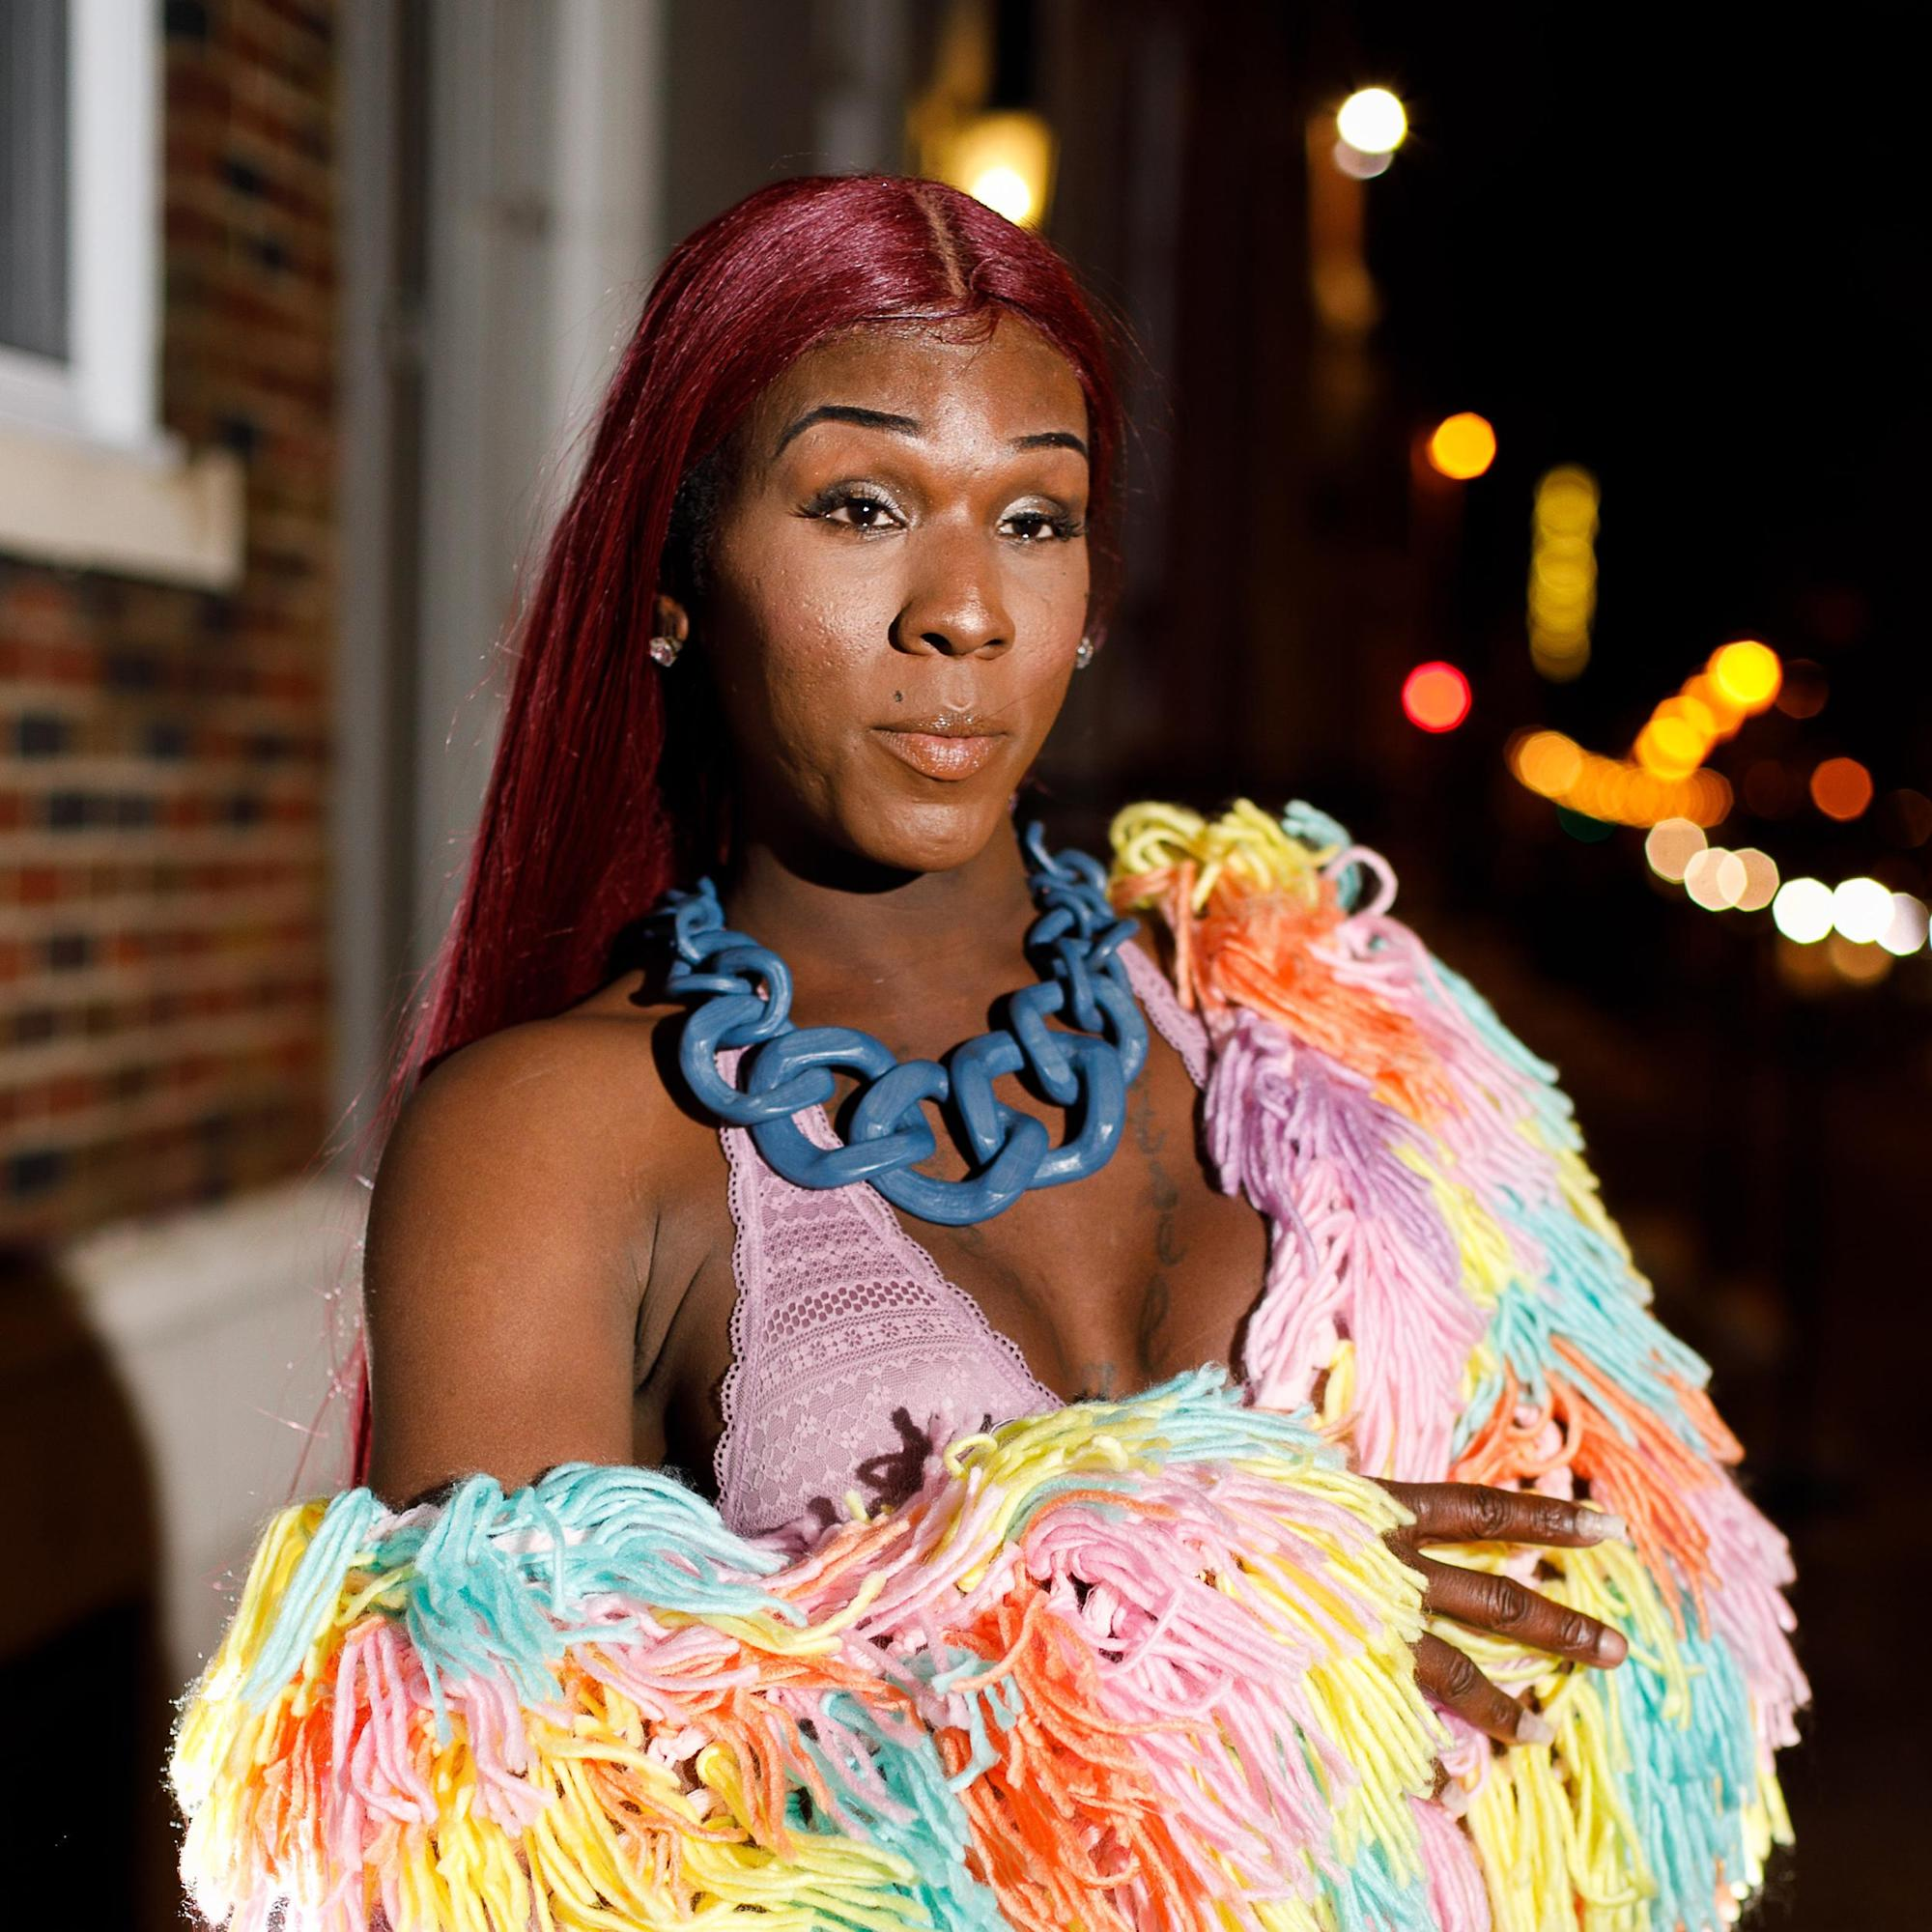 Fugitive arrested in grisly slaying of Philadelphia trans woman